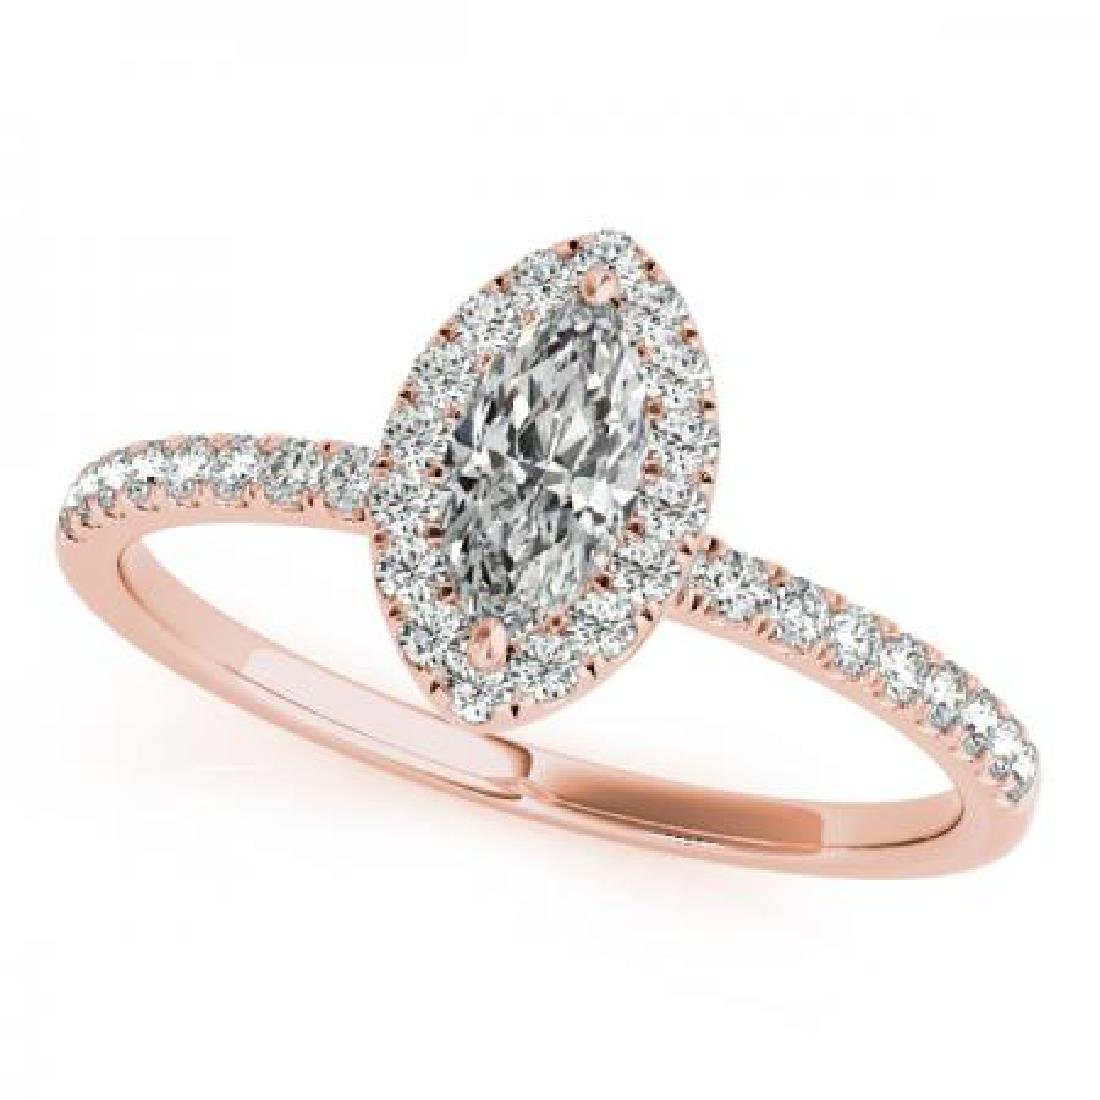 CERTIFIED 14KT ROSE GOLD 1.47 CT G-H/VS-SI1 DIAMOND HAL